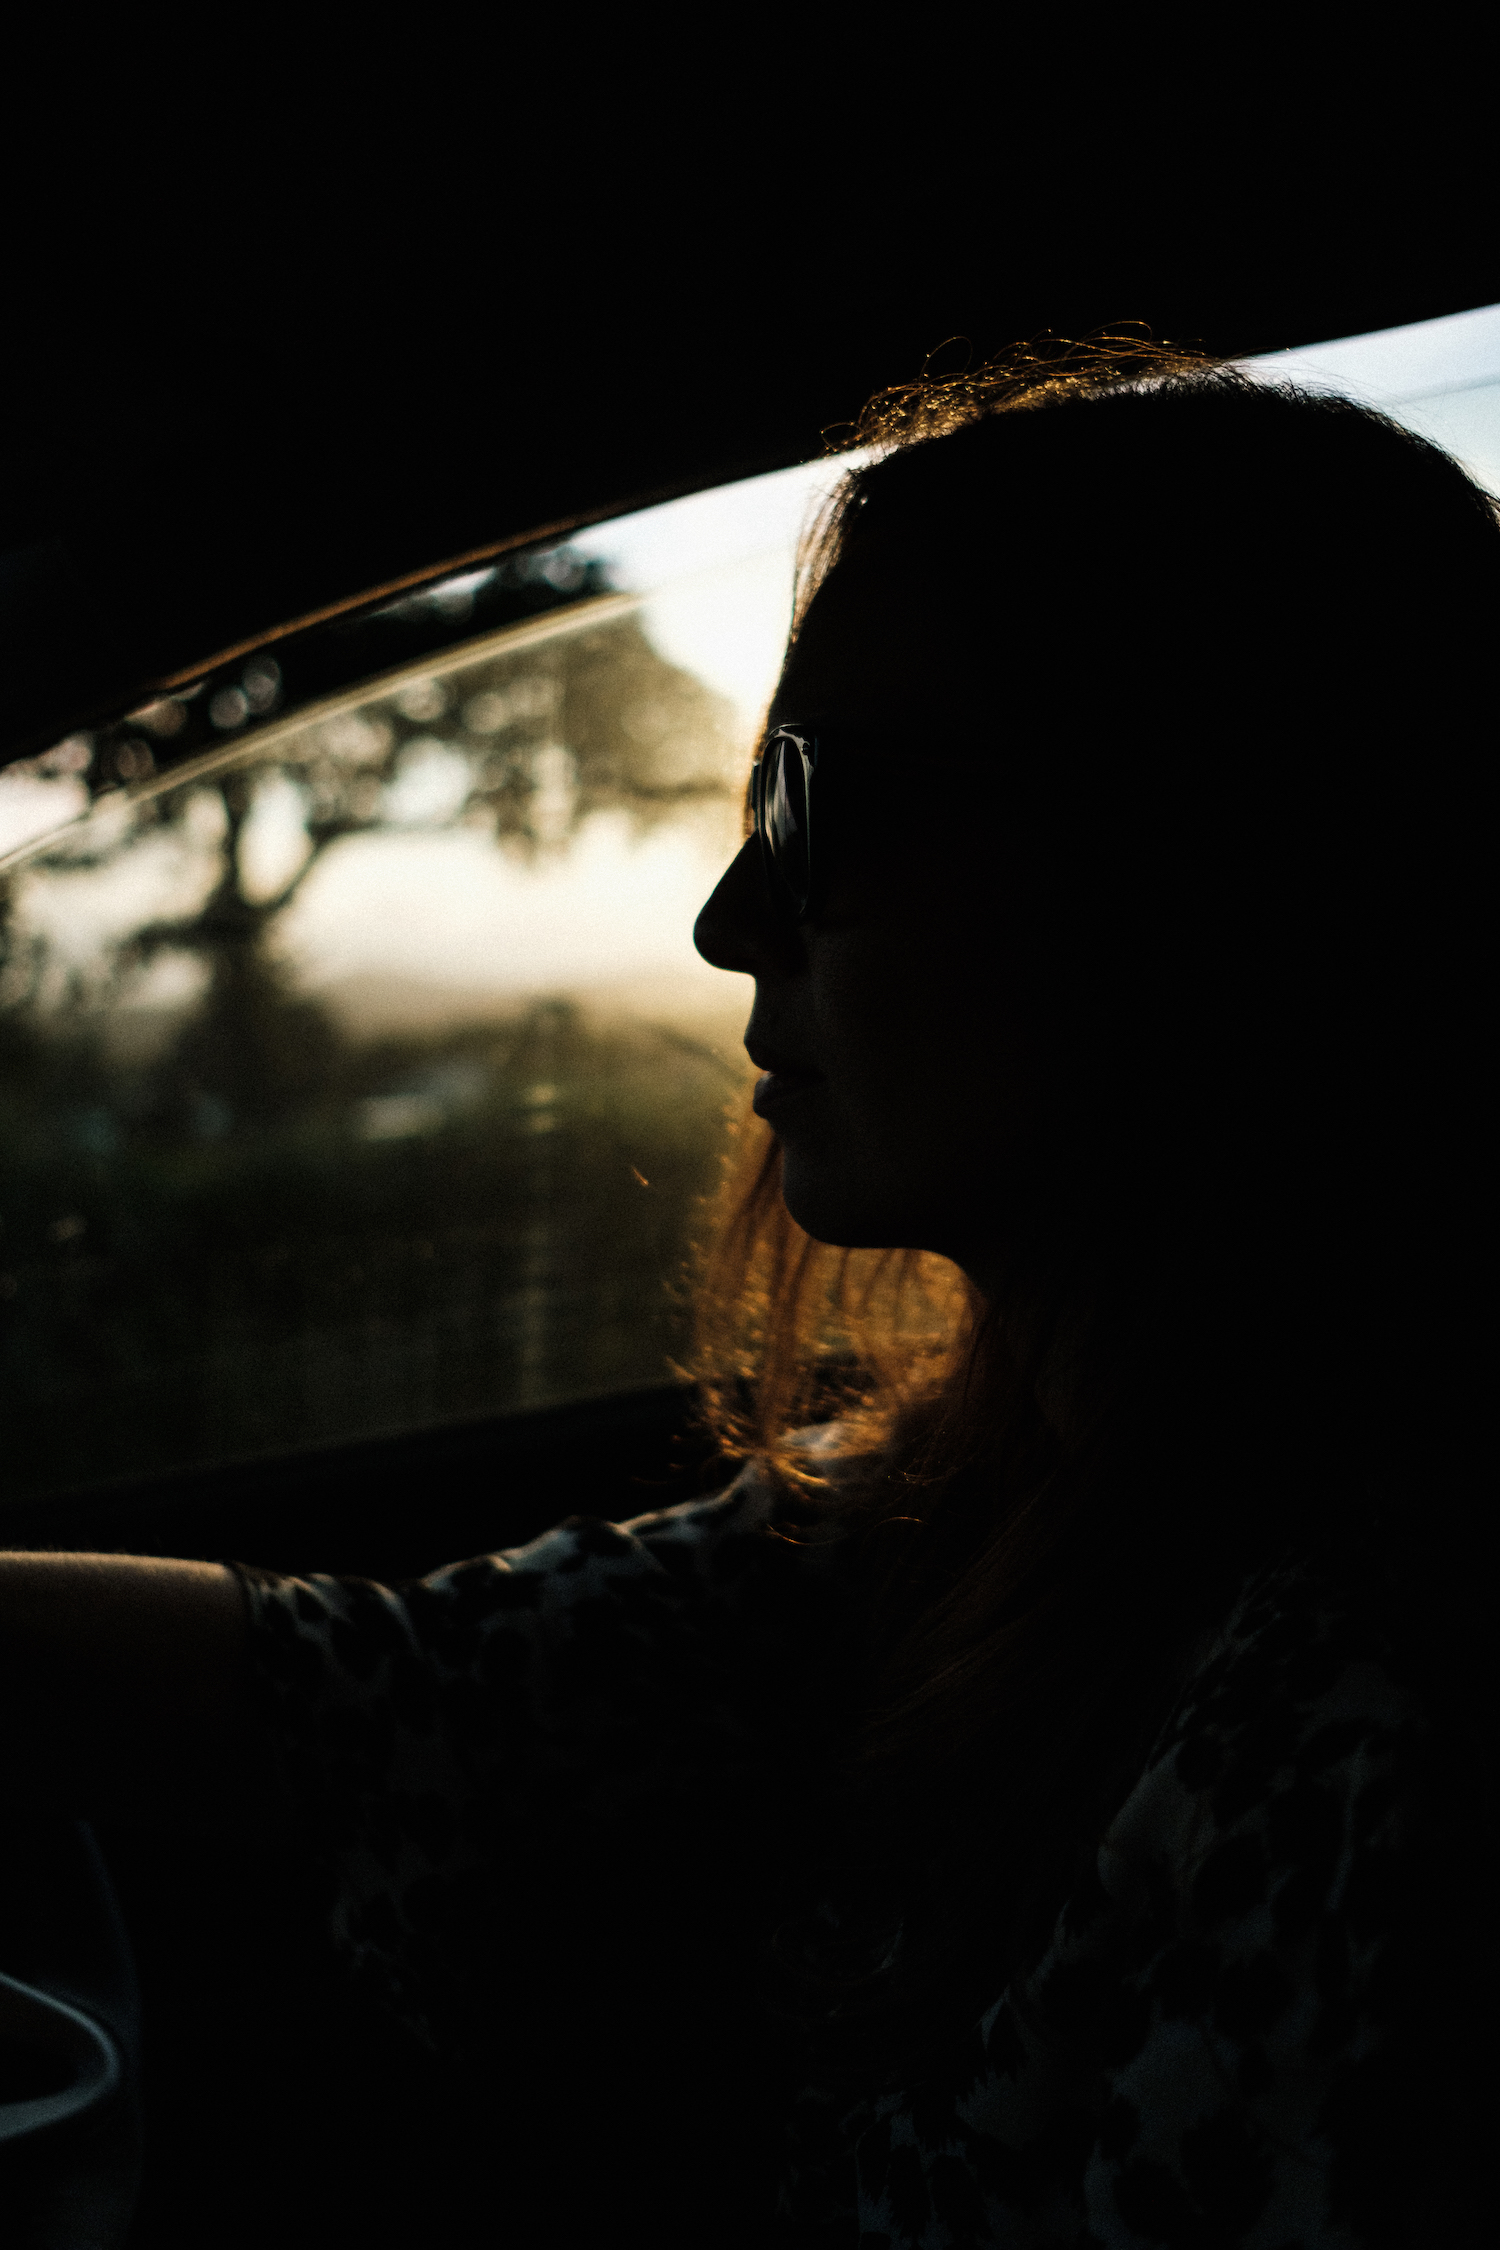 Sarah Drives - Gower Peninsula South Wales - Portrait Photography by Ben Holbrook from DriftwoodJournals.com-10